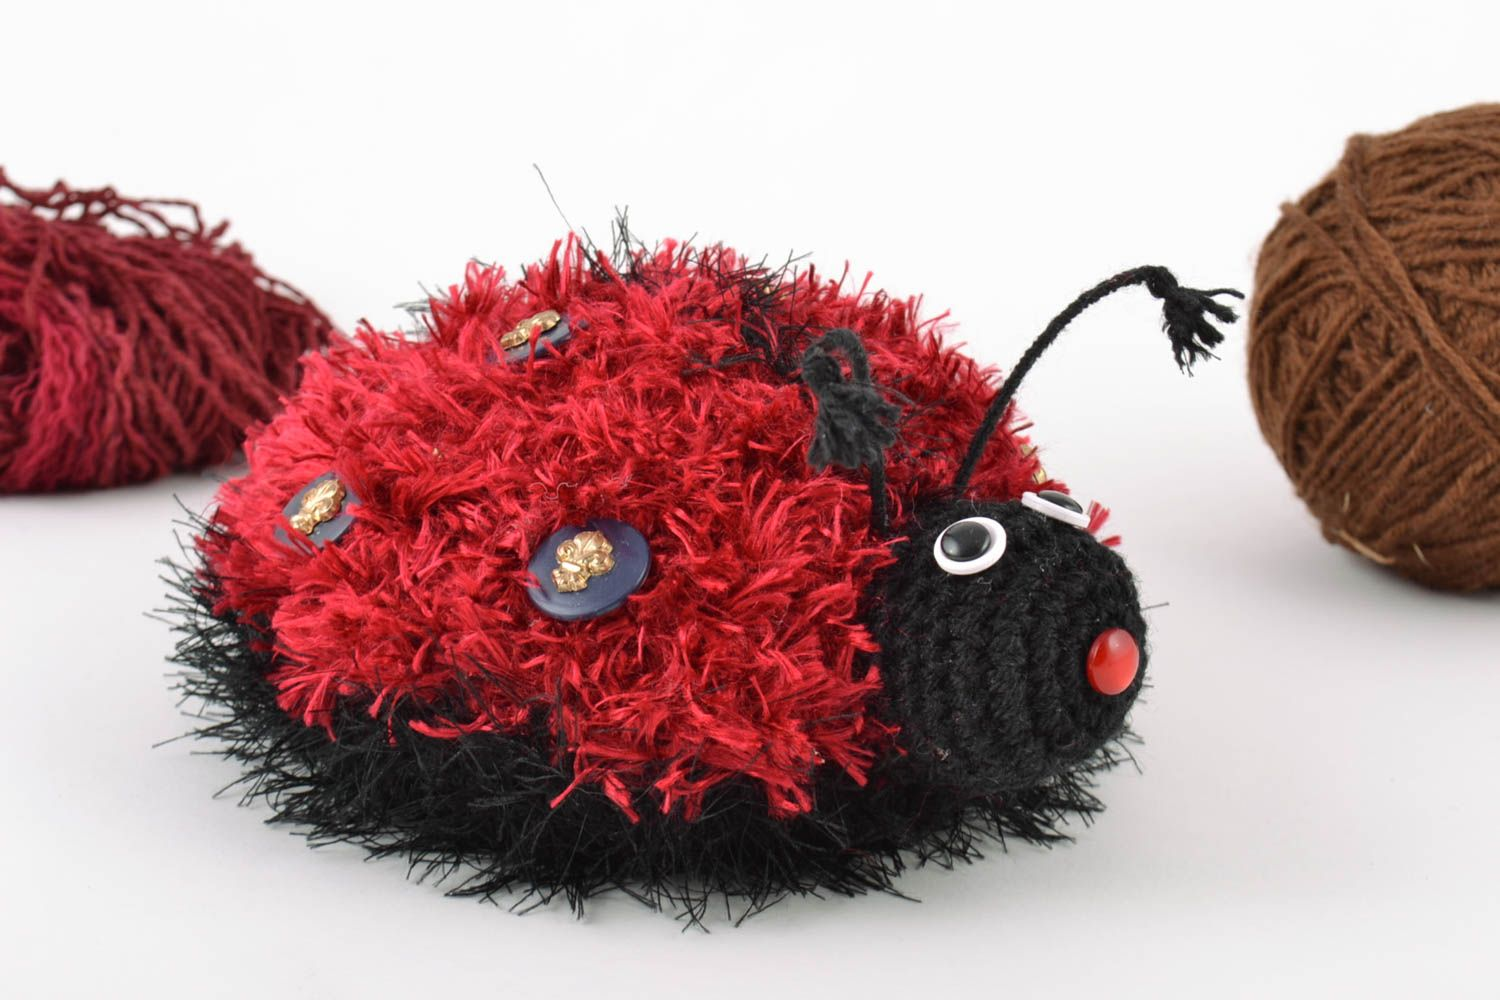 Handmade soft crochet wool toy for children beautiful Ladybug amigurumi photo 1